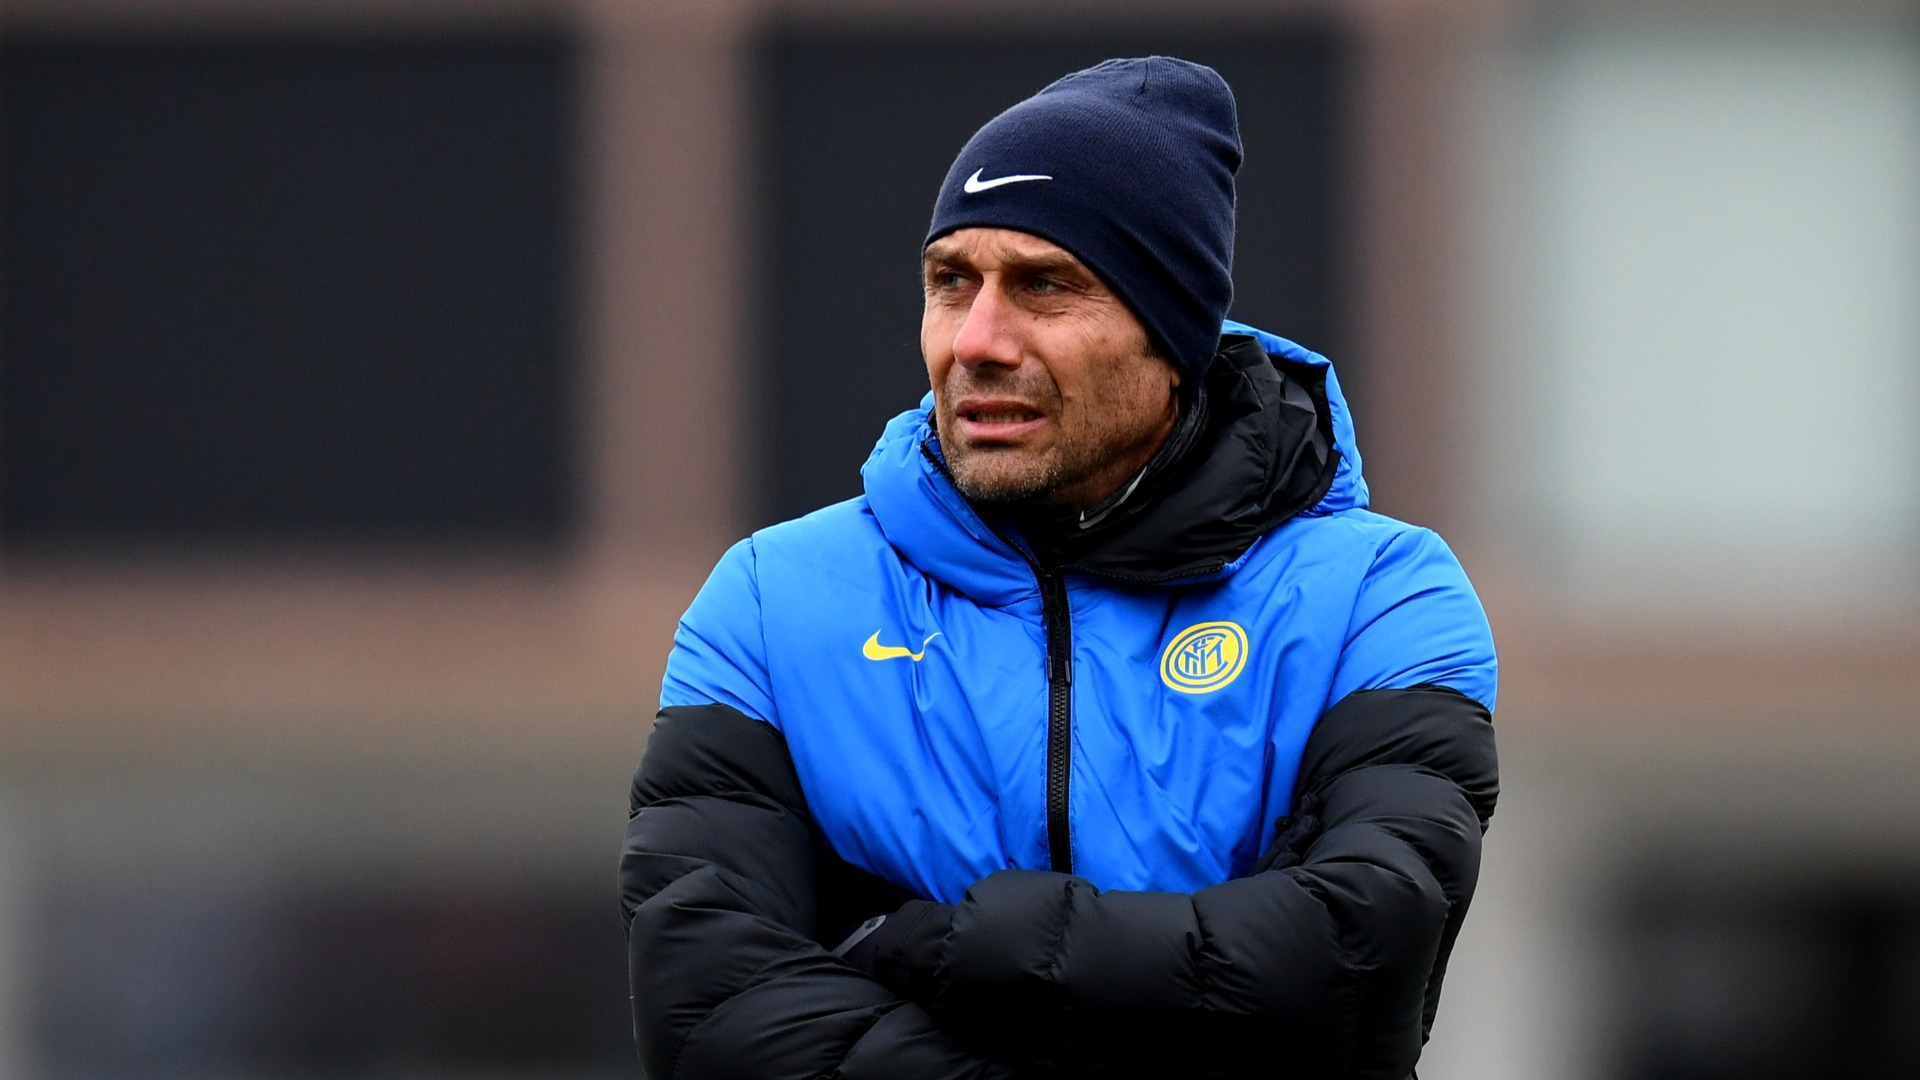 Conte tells Inter the Serie A title race is not won: 'We haven't done anything yet'